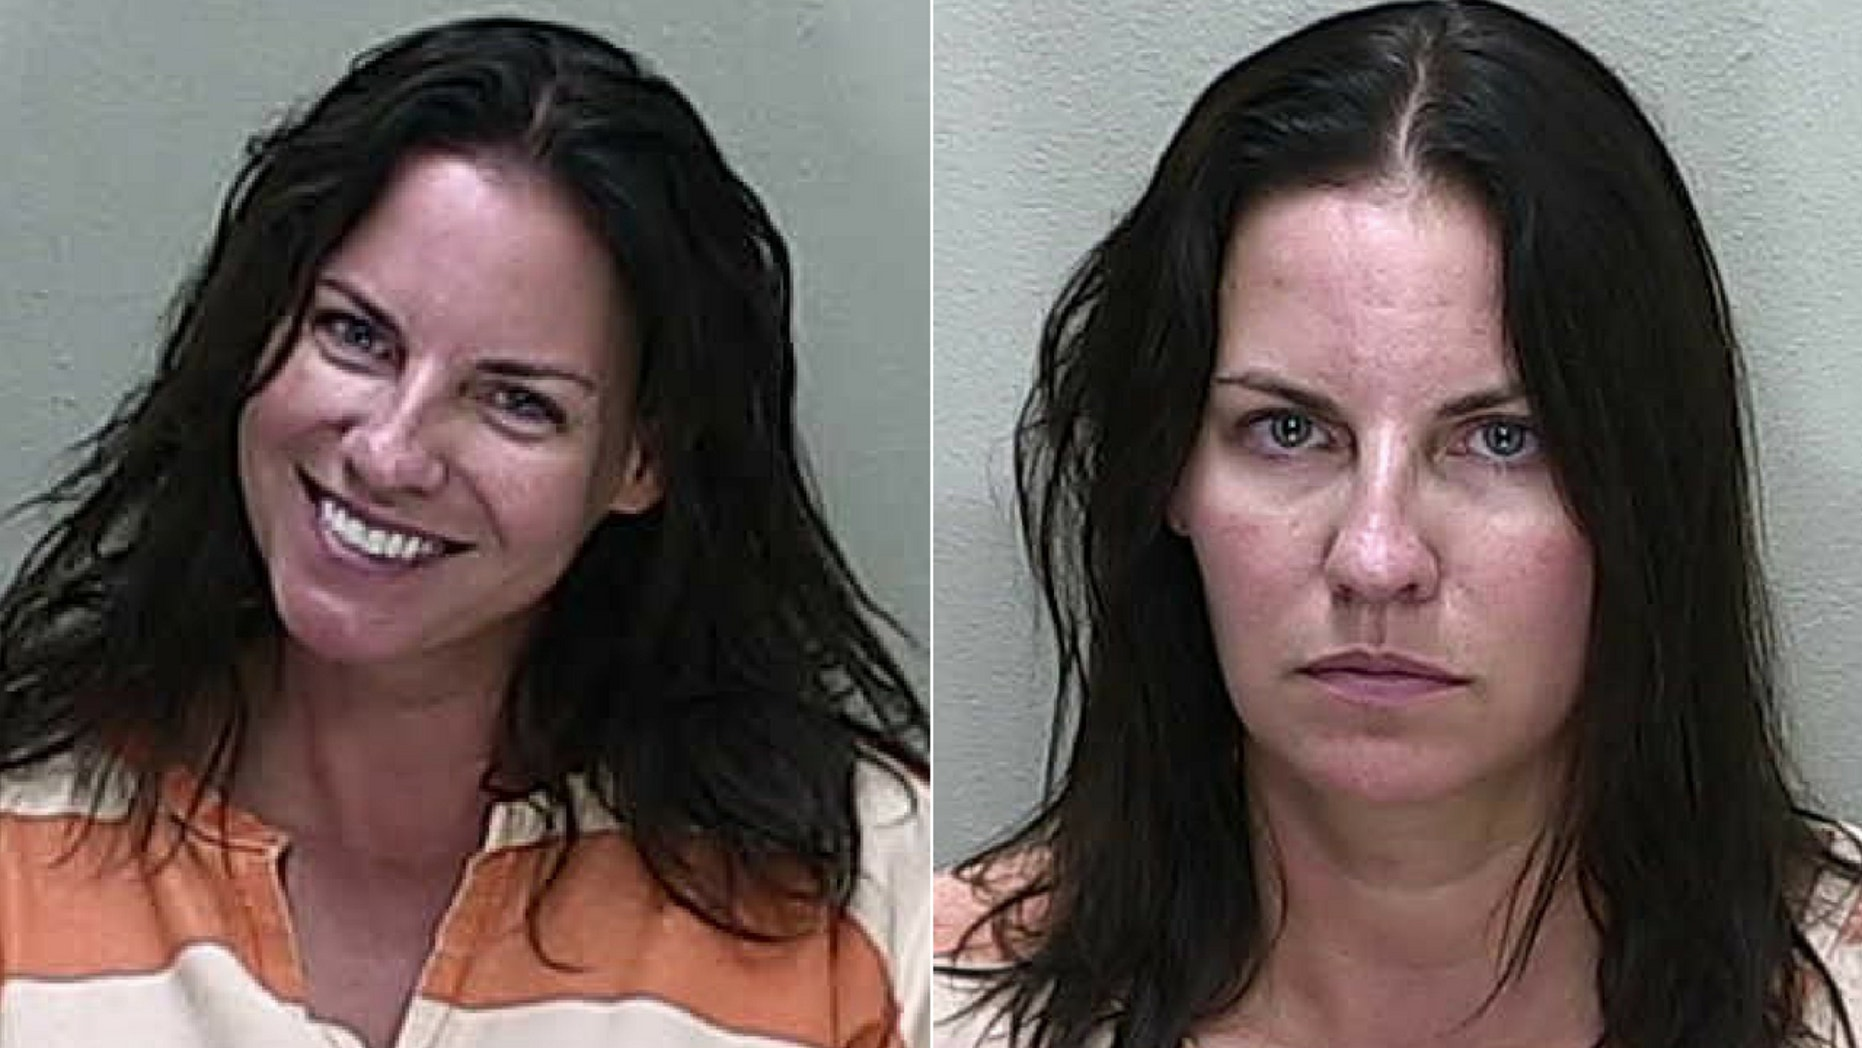 Angenette Marie Welk, 44, was charged with DUI manslaughter after a 60-year-old mother died following a drunk driving crash.